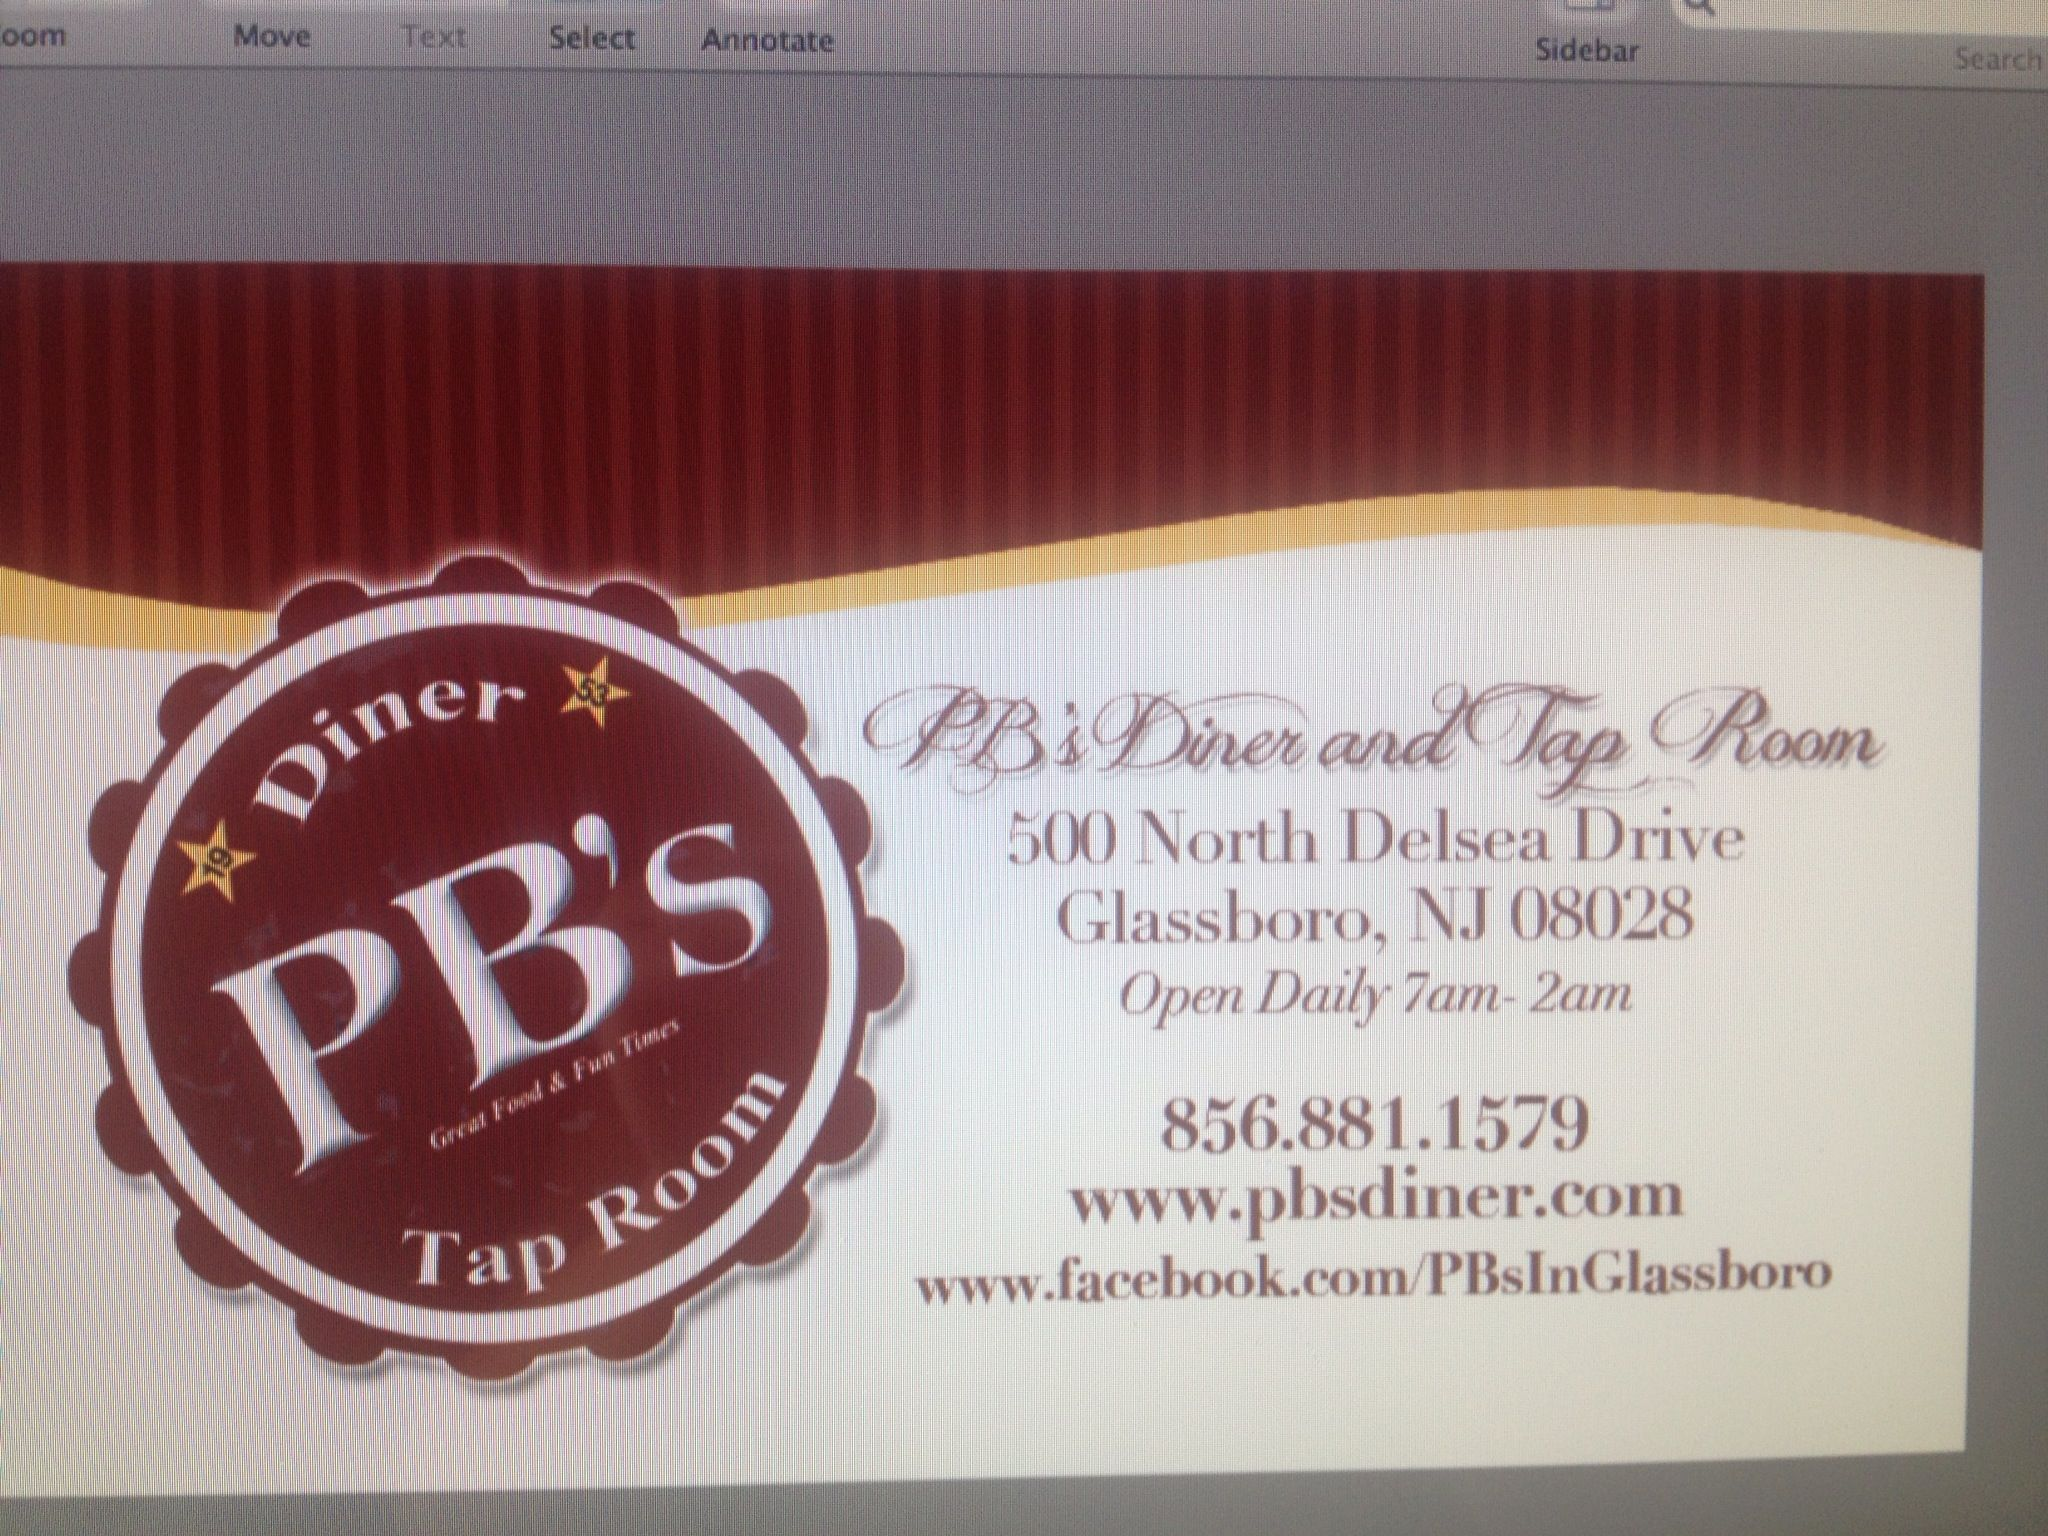 Business cards for Pb\'s diner and tap room in glassboro. | design by ...